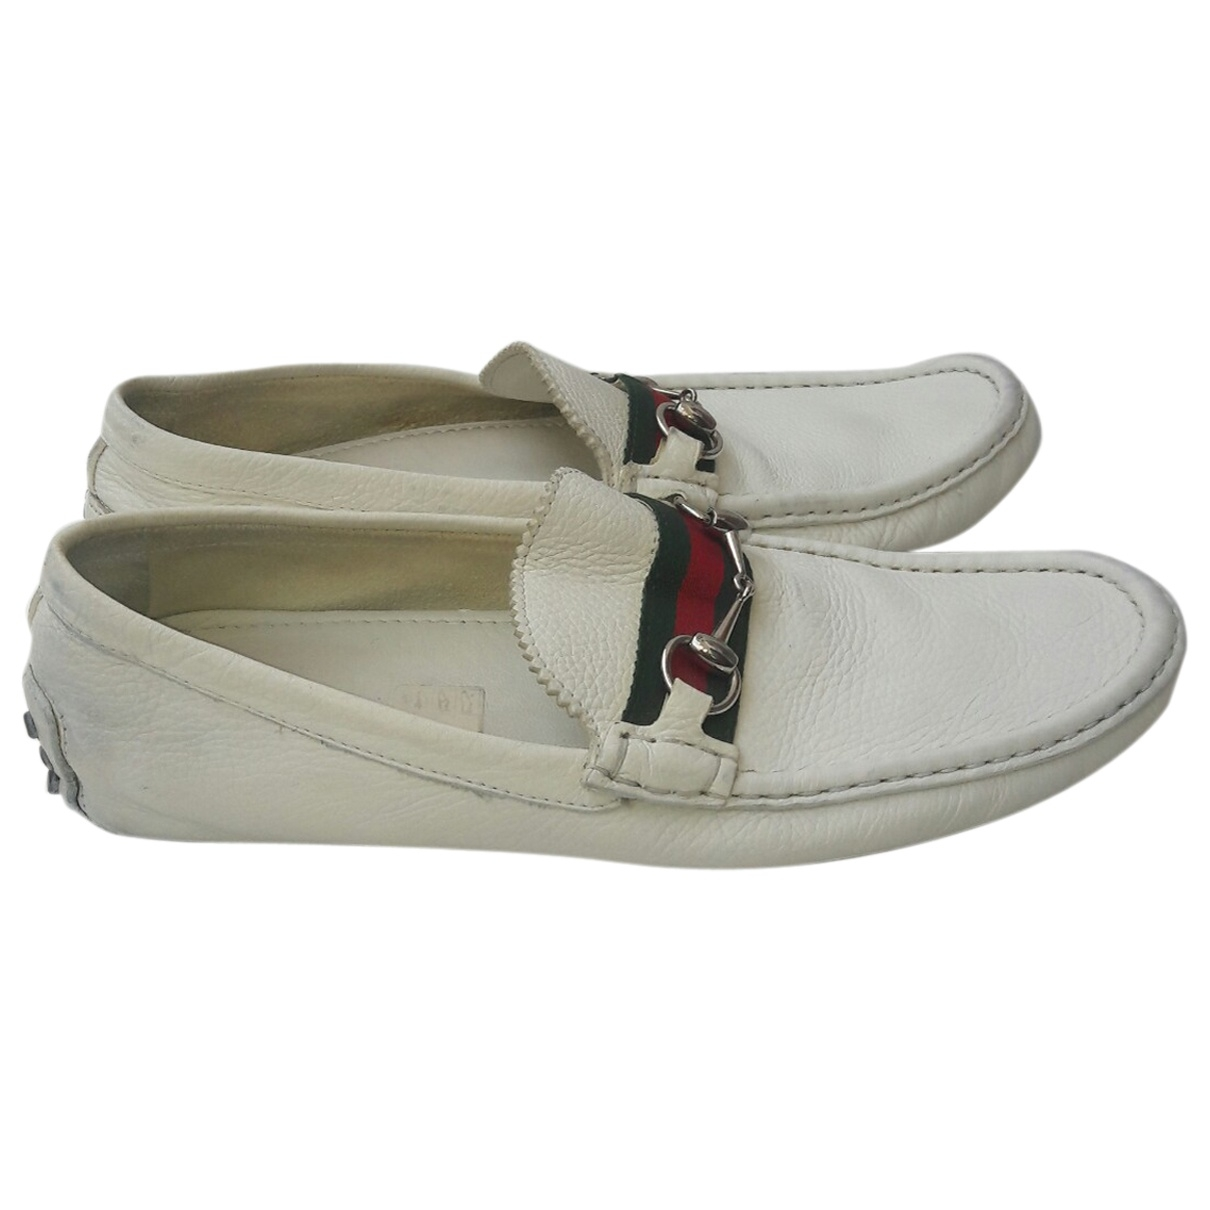 Gucci \N Mokassins in  Weiss Leder